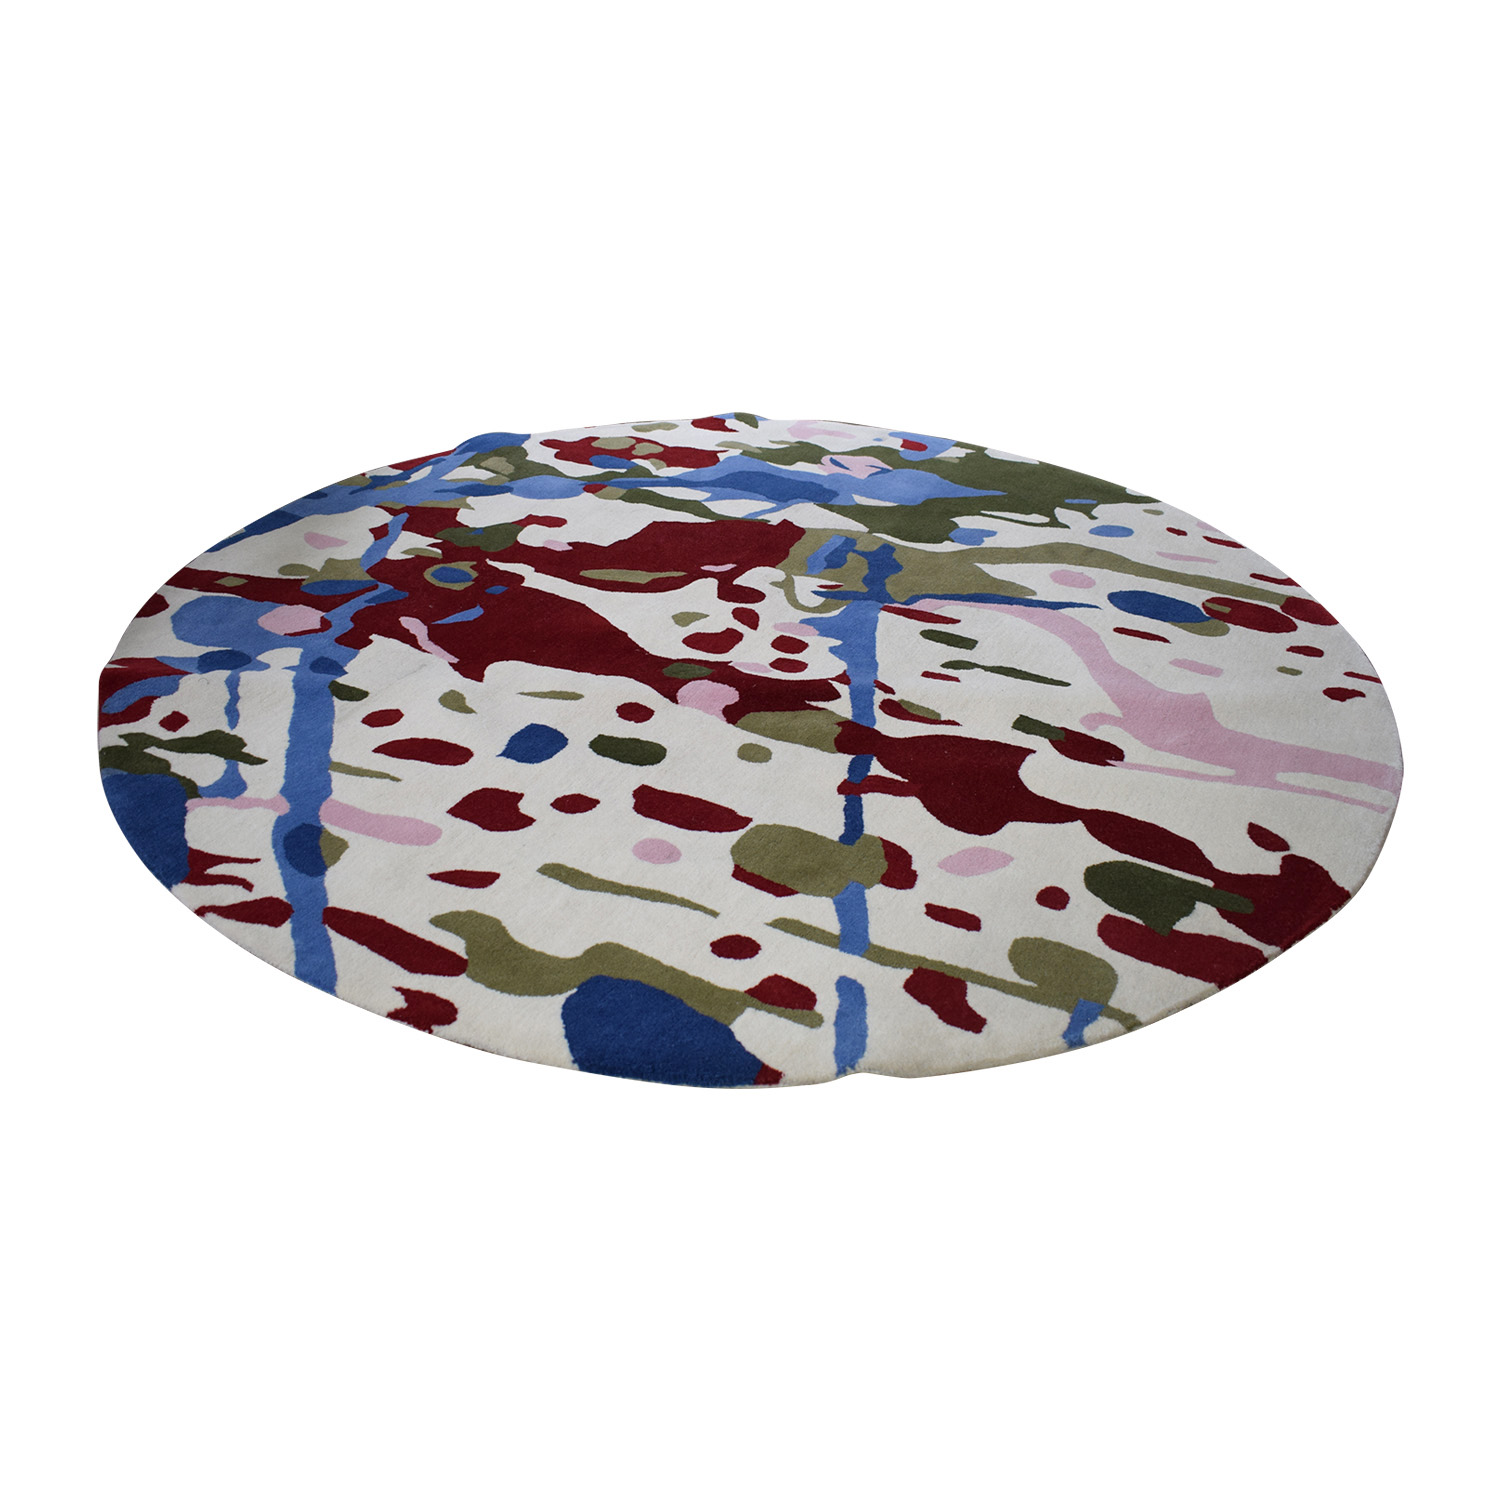 shop Obeetee Round Handtufted Multi-Colored Rug Obeetee Sofas